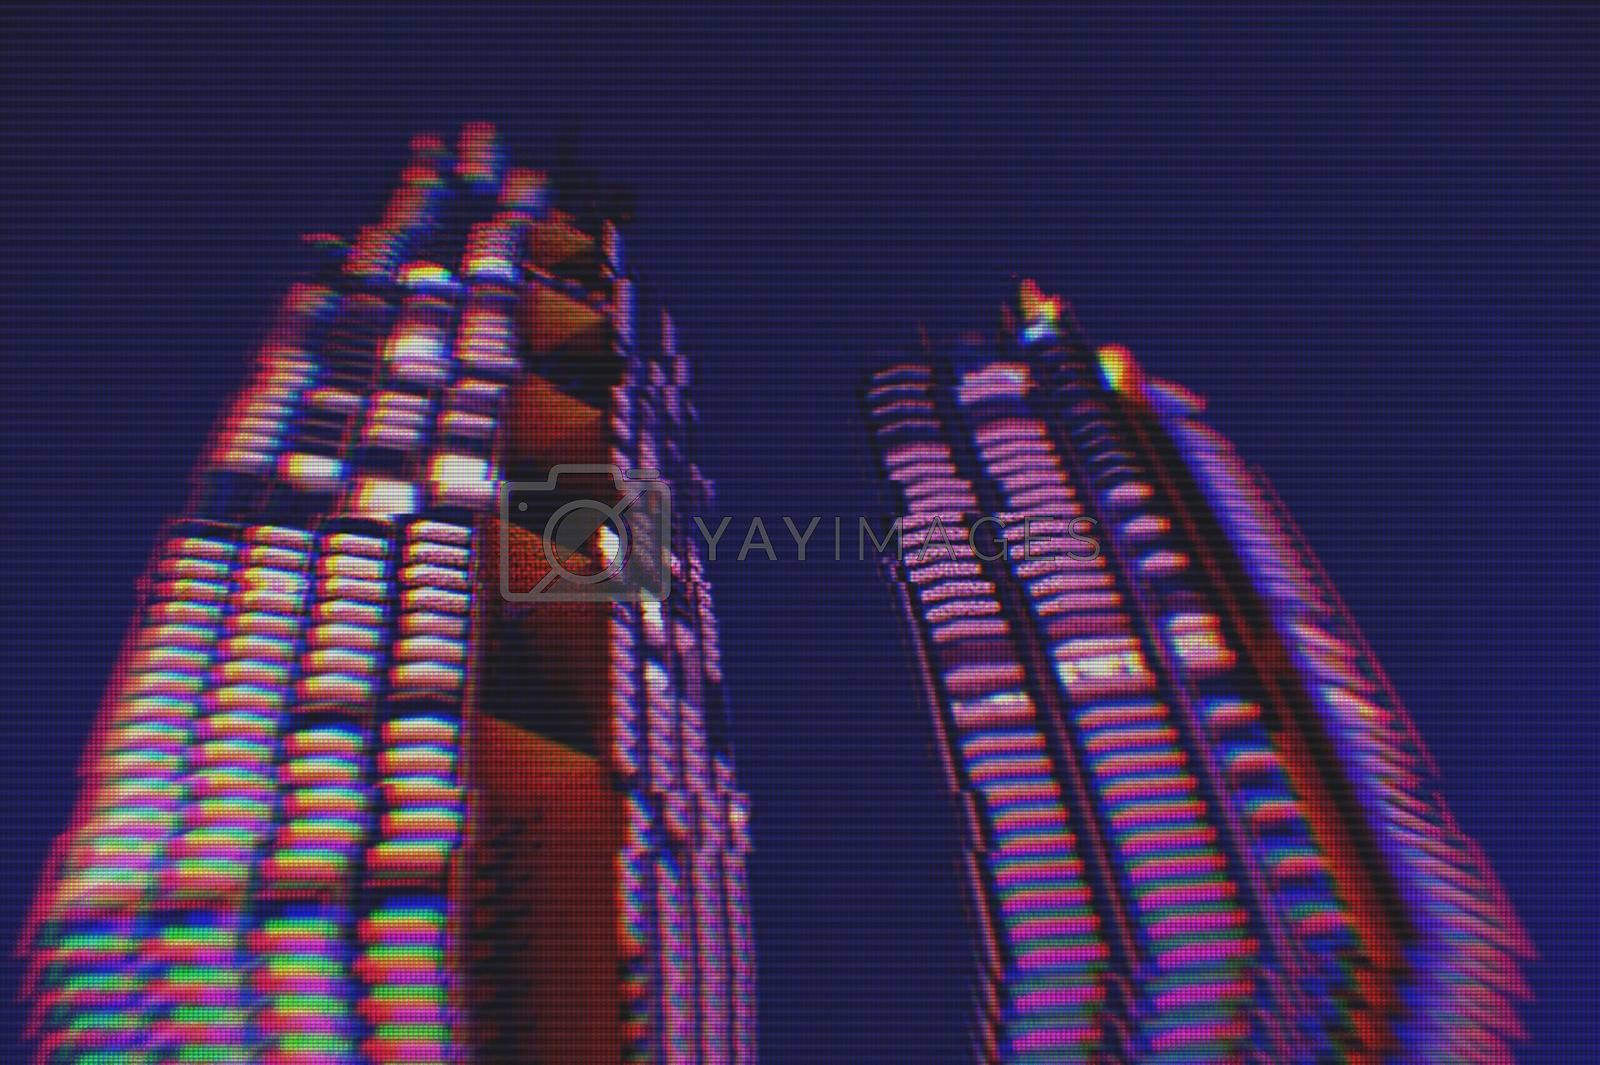 View of modern buildings in the city night background with digital glitch effect